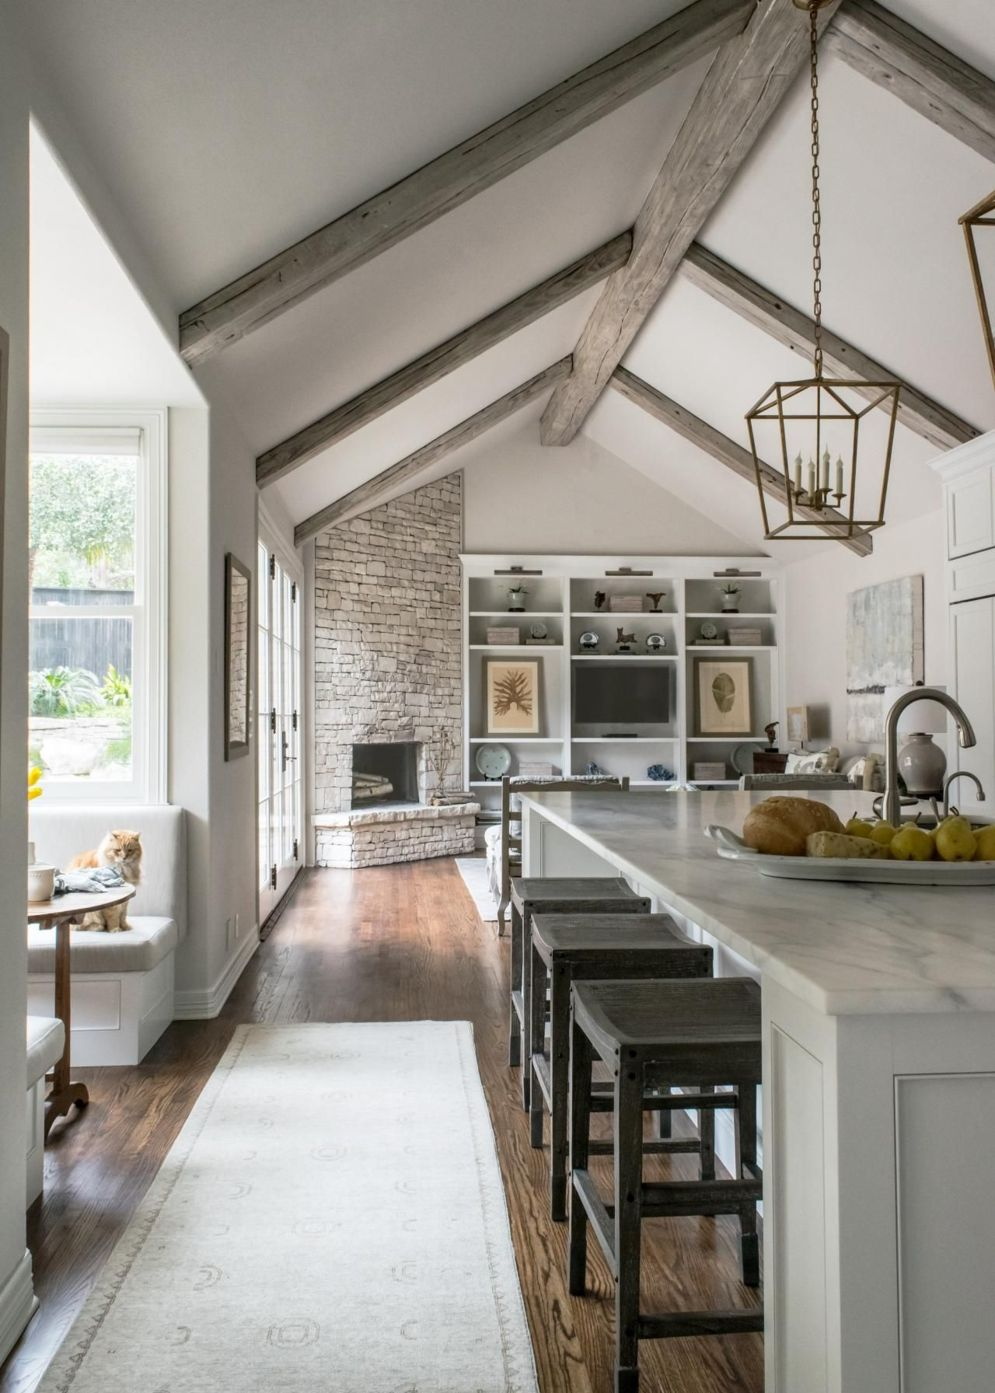 Spacious home images with vaulted ceiling showcasing grand and wonderful home design Image 32